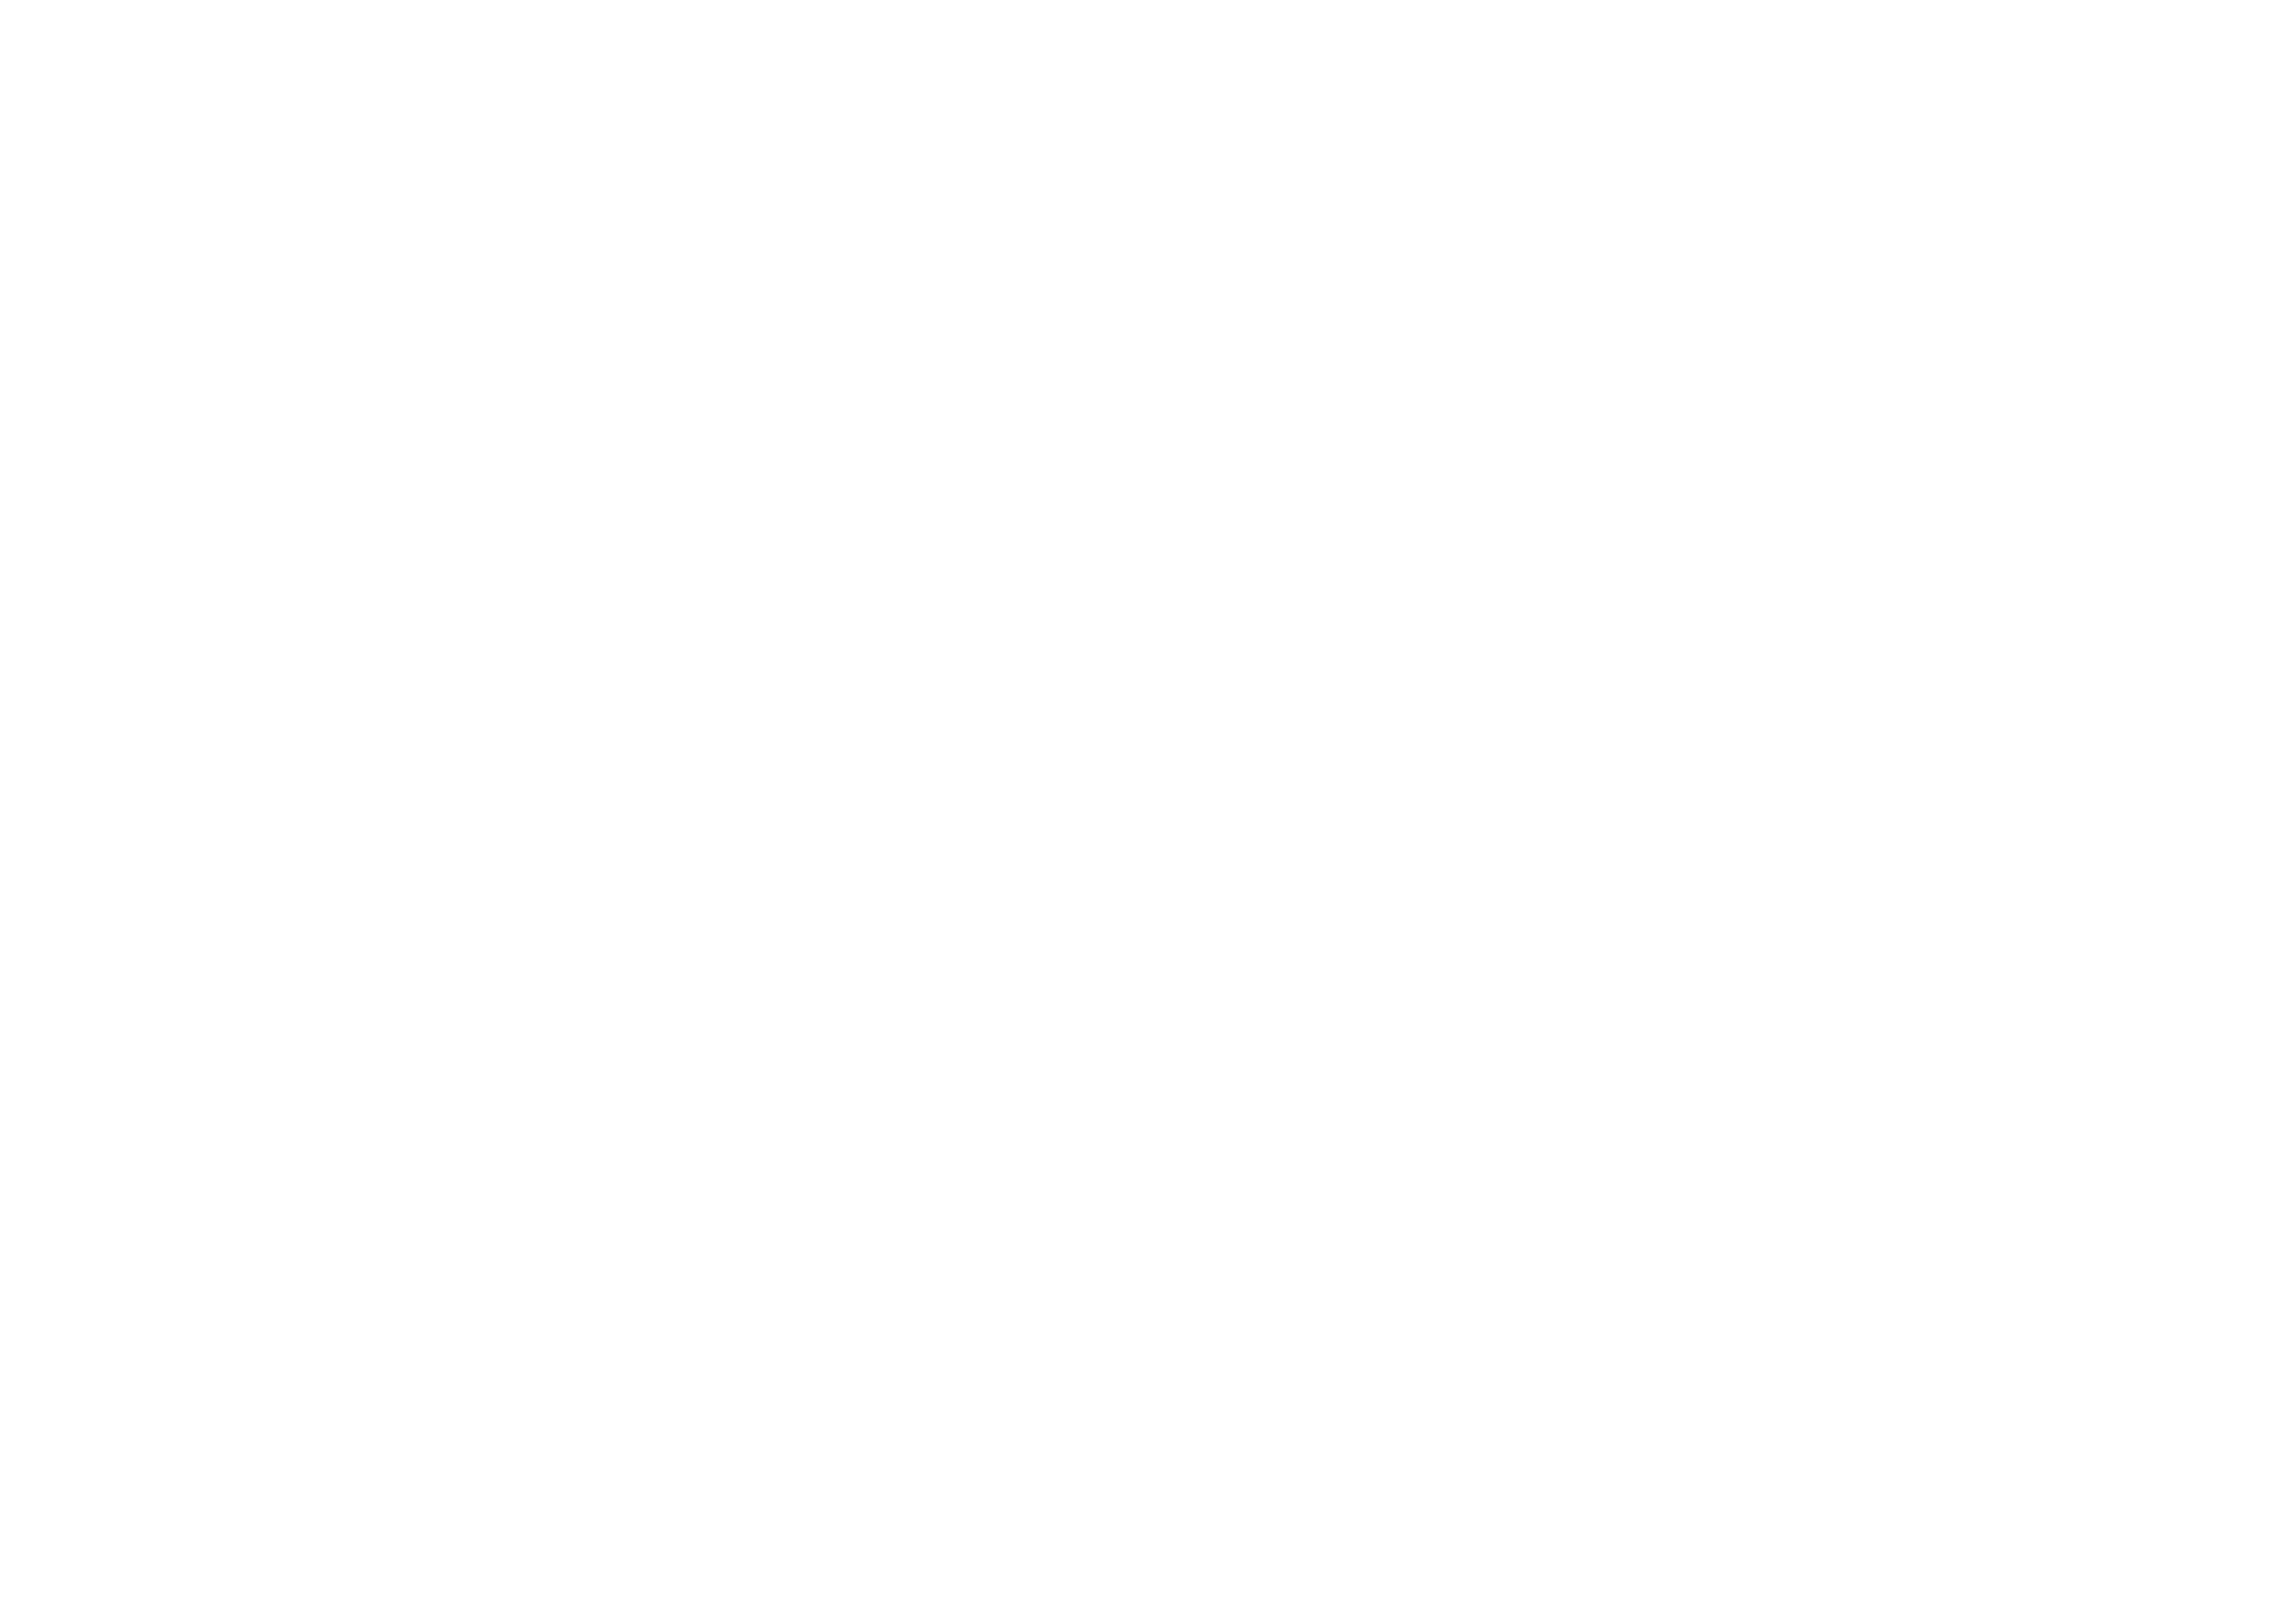 Carrefour Nolim Films